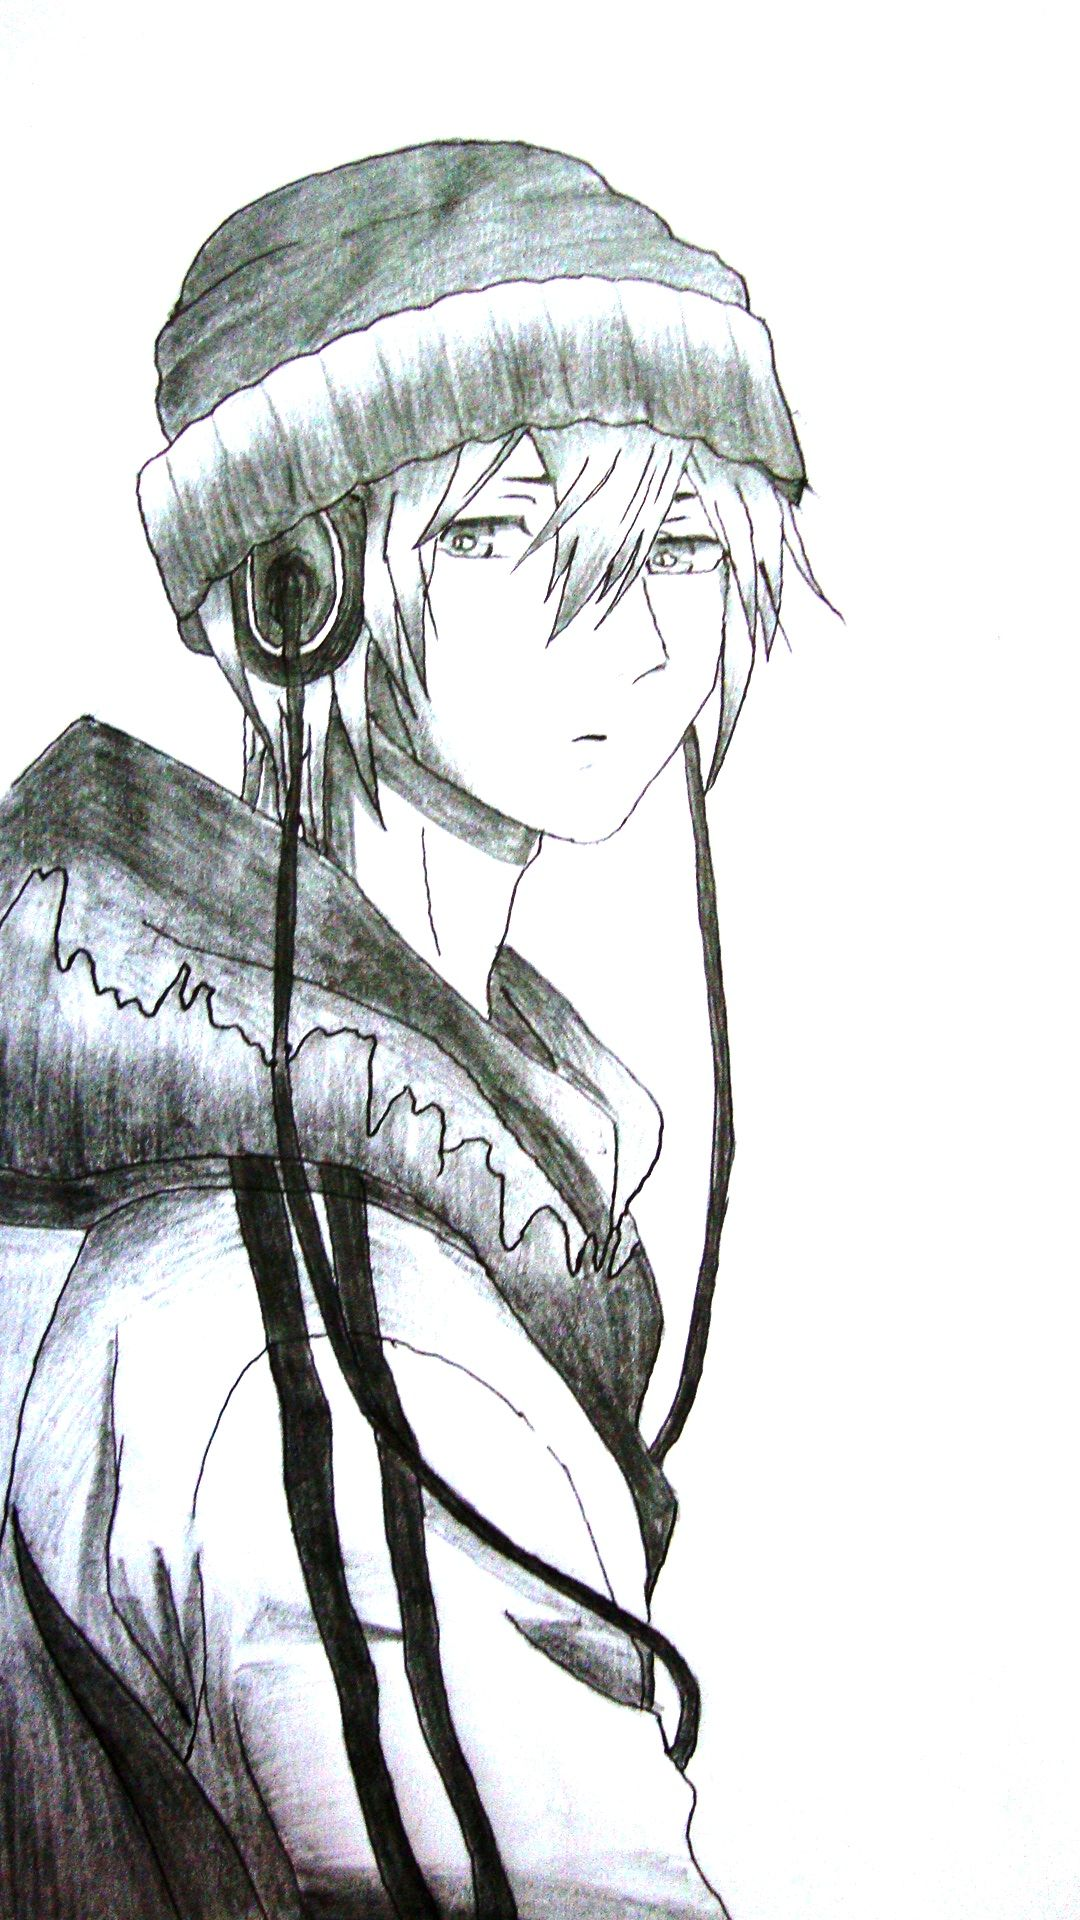 Anime Headphones Boy Pencil Sketch Anime Art Beautiful Anime Anime Art